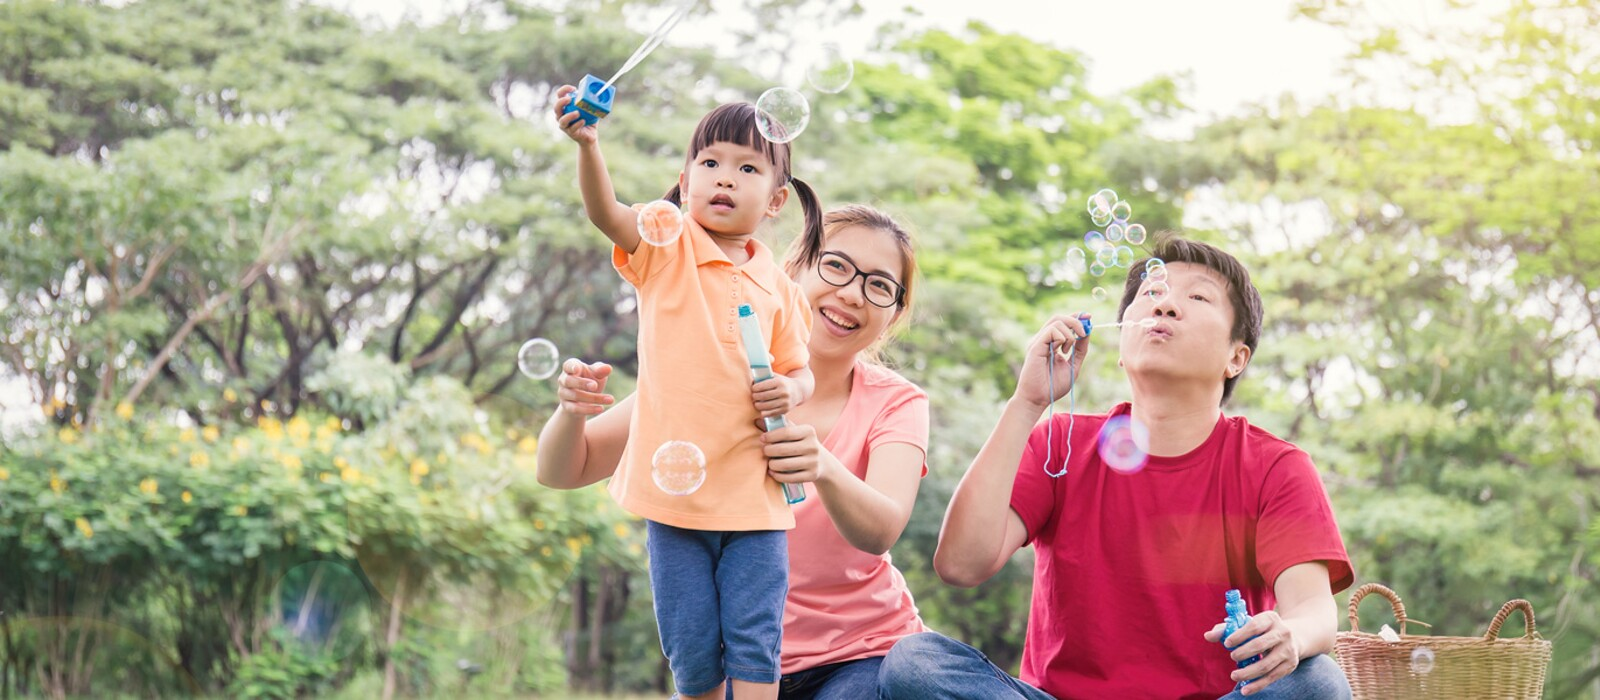 5 Bonding Activities with Your Kids